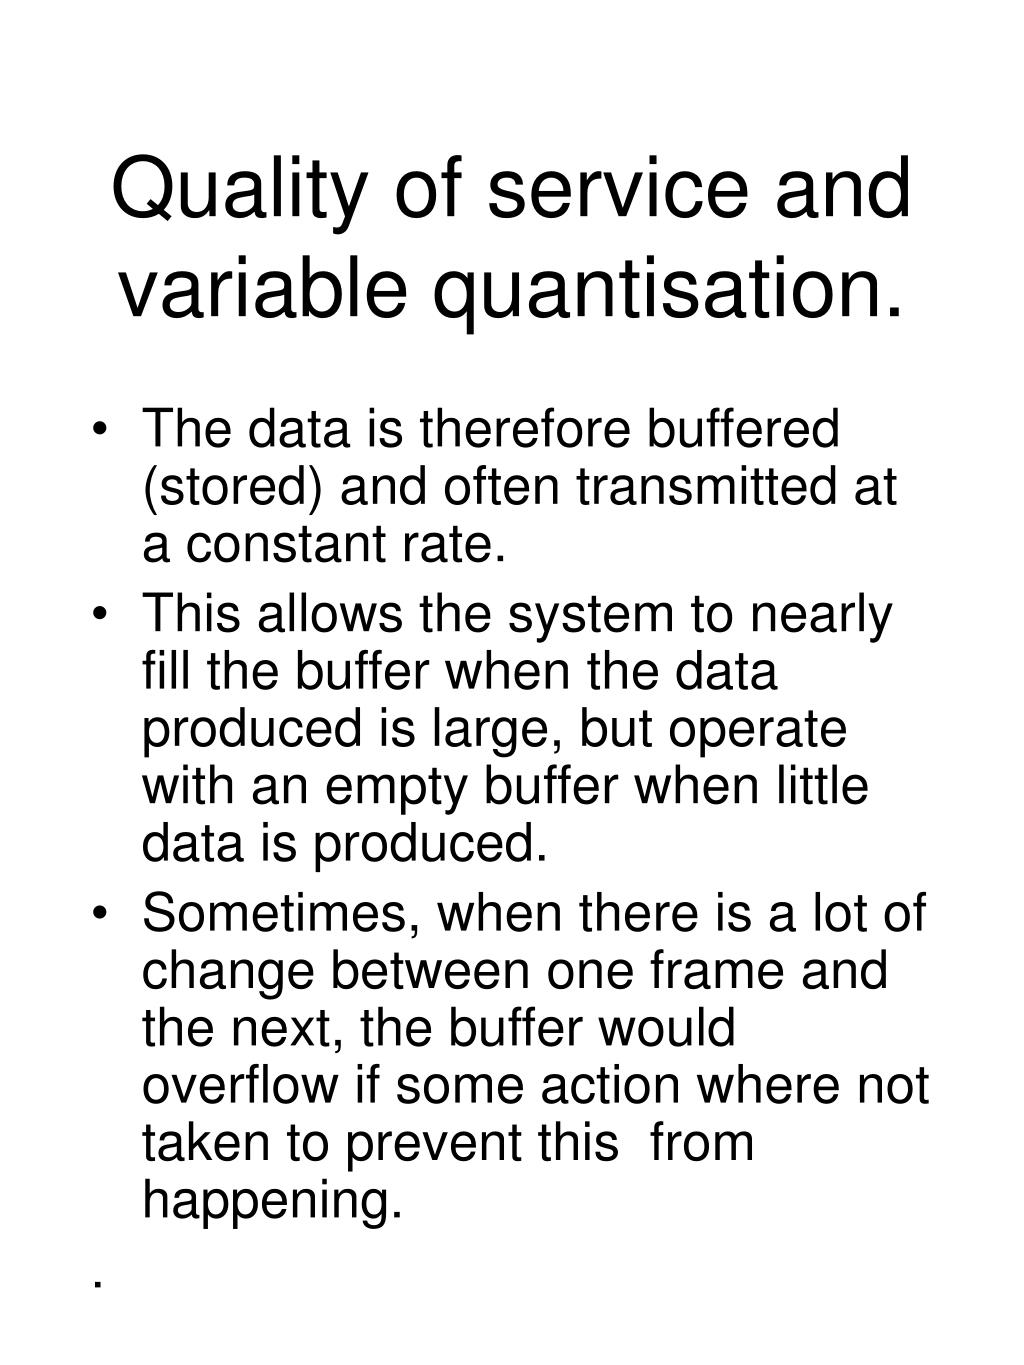 Quality of service and variable quantisation.